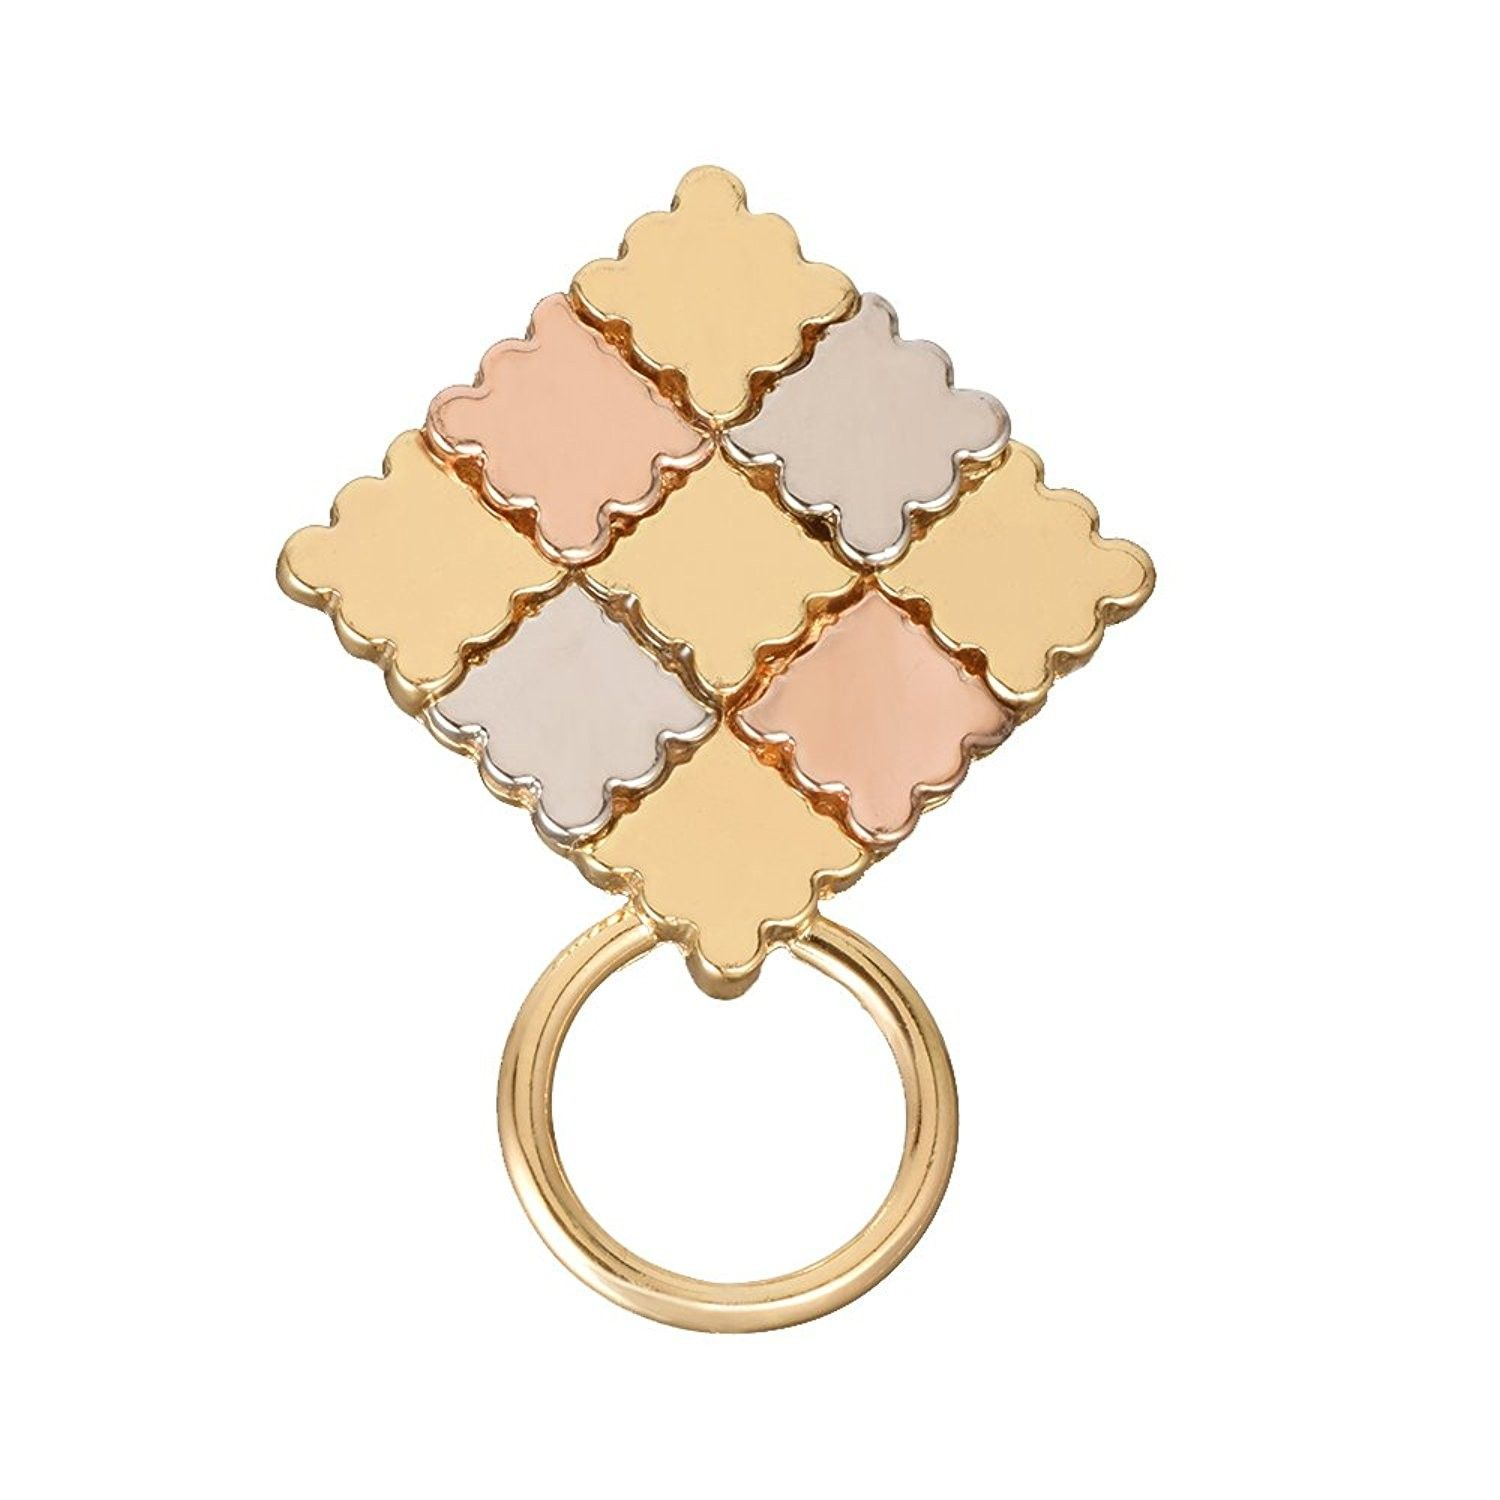 3 Colors Puzzle Piece Lapel Pin Brooch Pin Magnetic